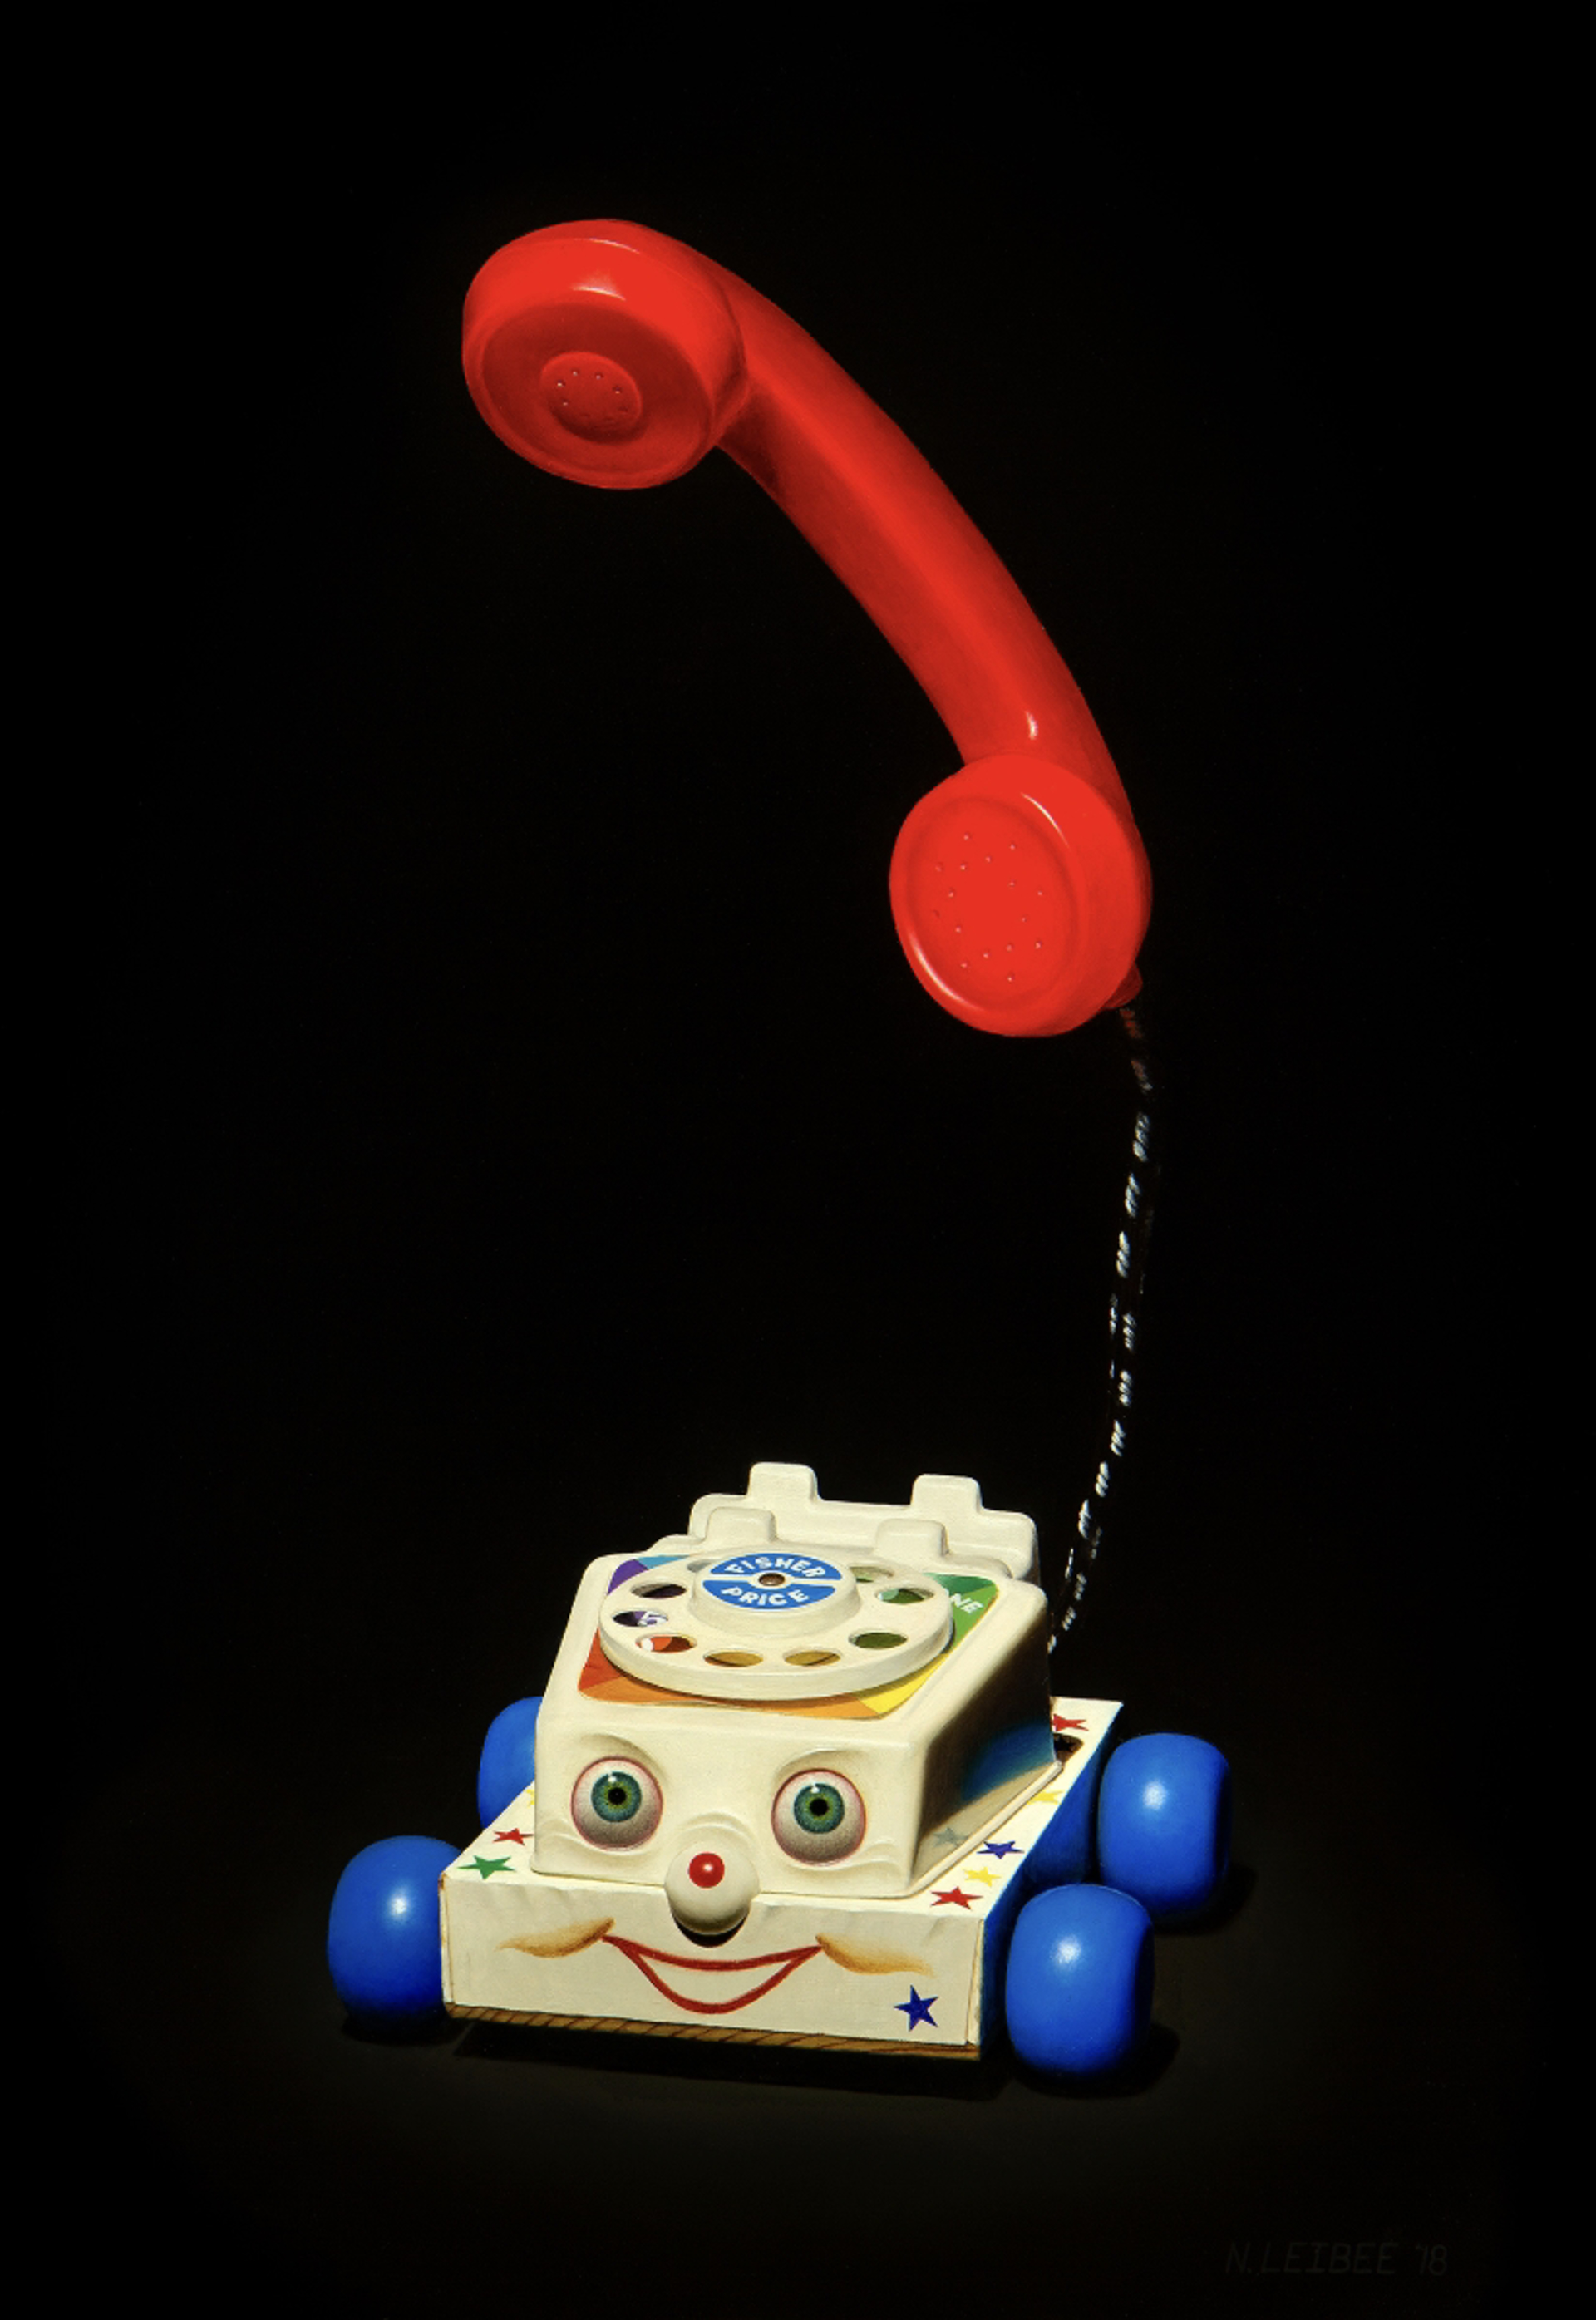 It's for You (Chatterphone) by Nick Leibee